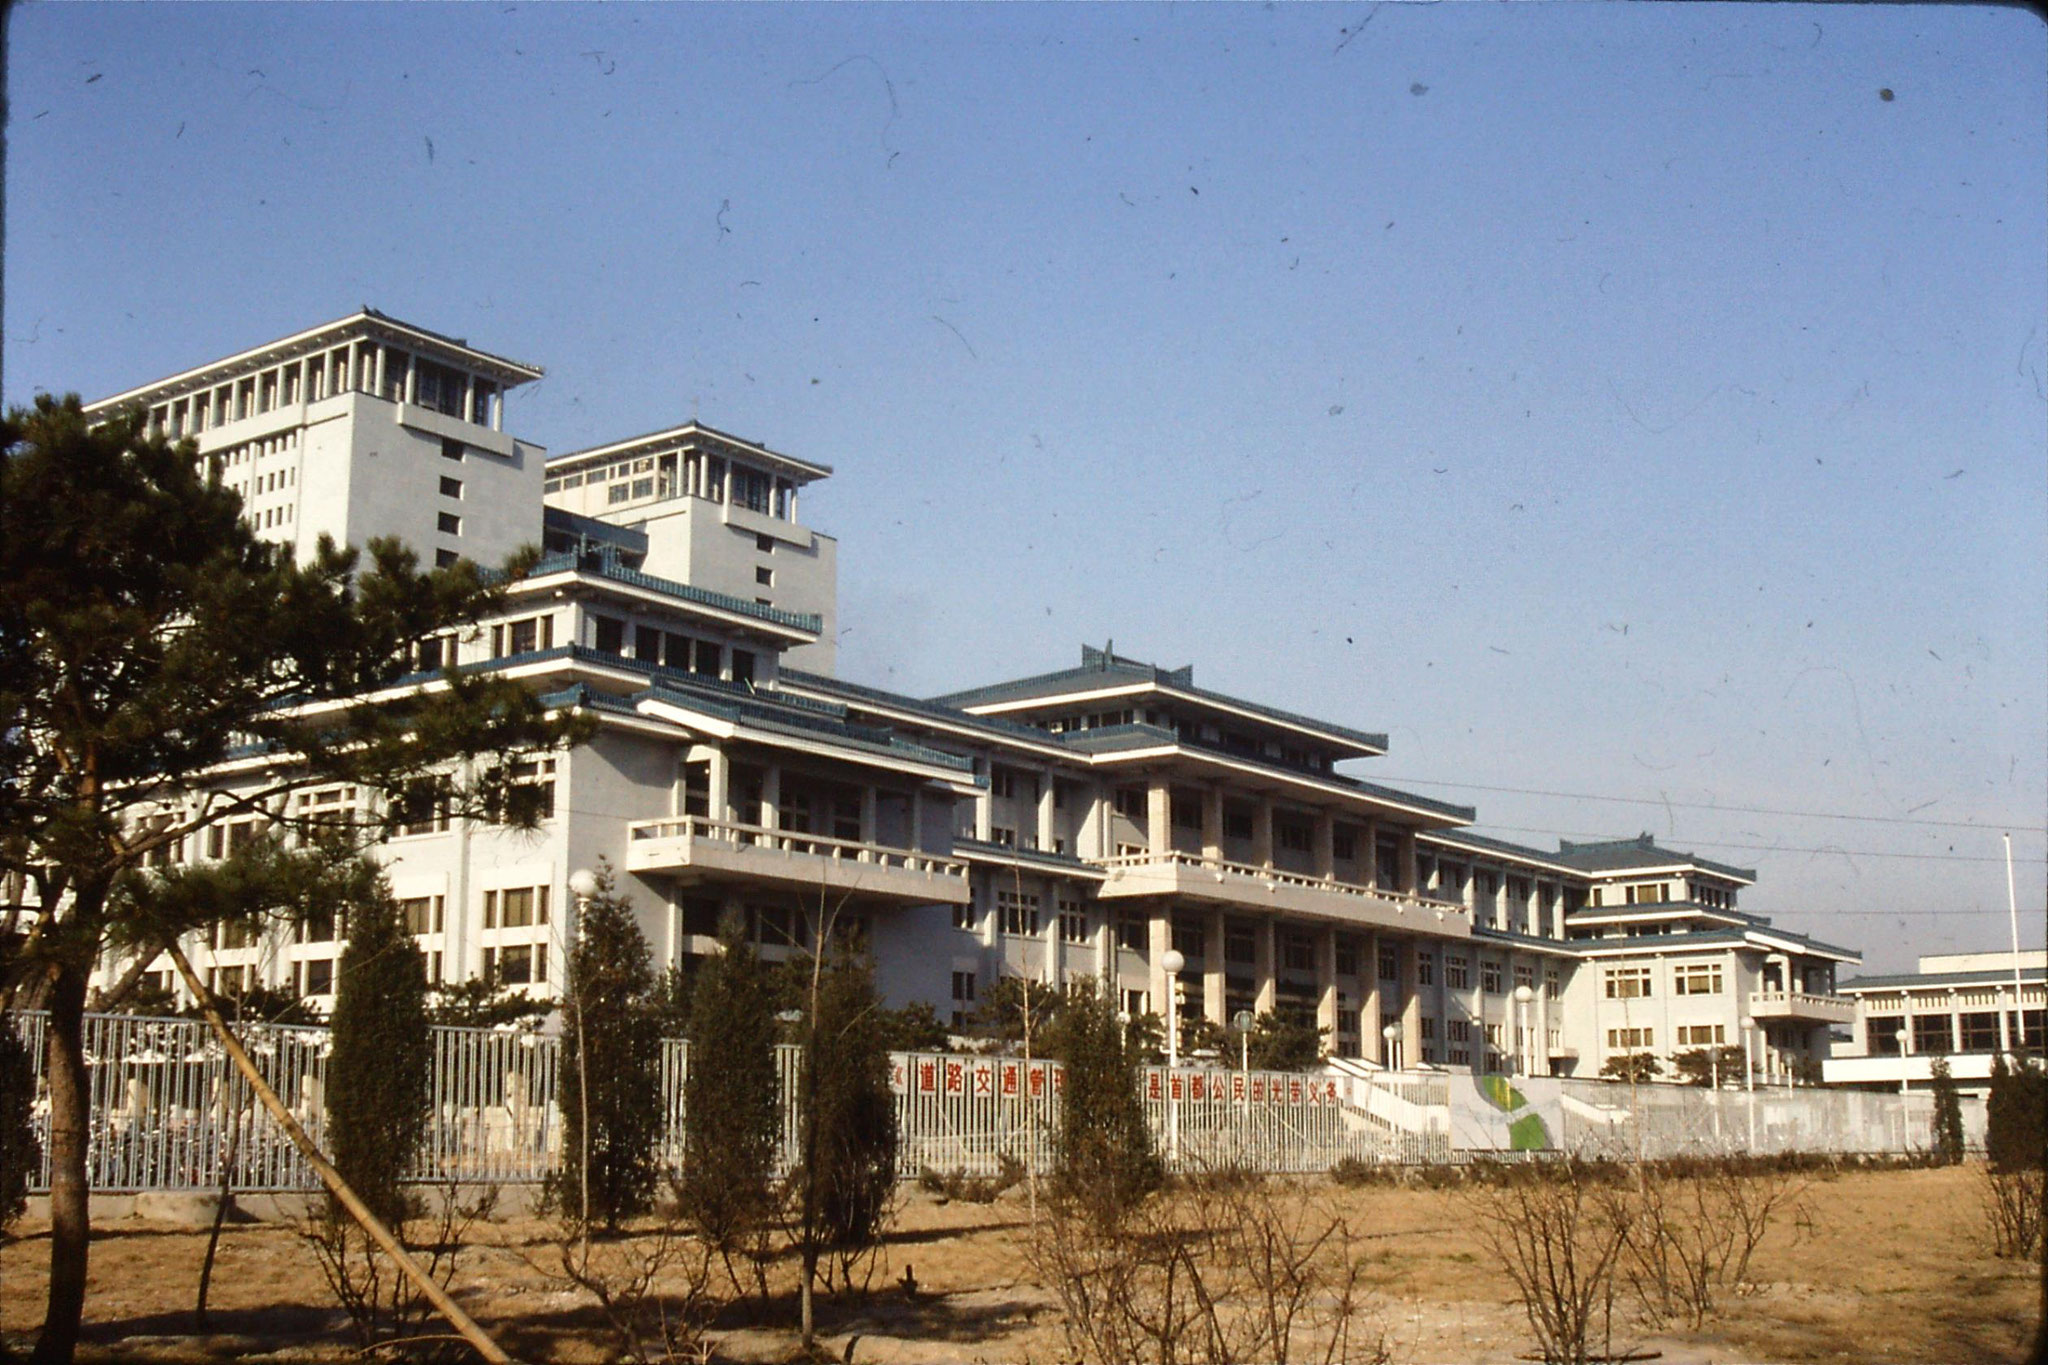 5/12/1988: 20: new China library